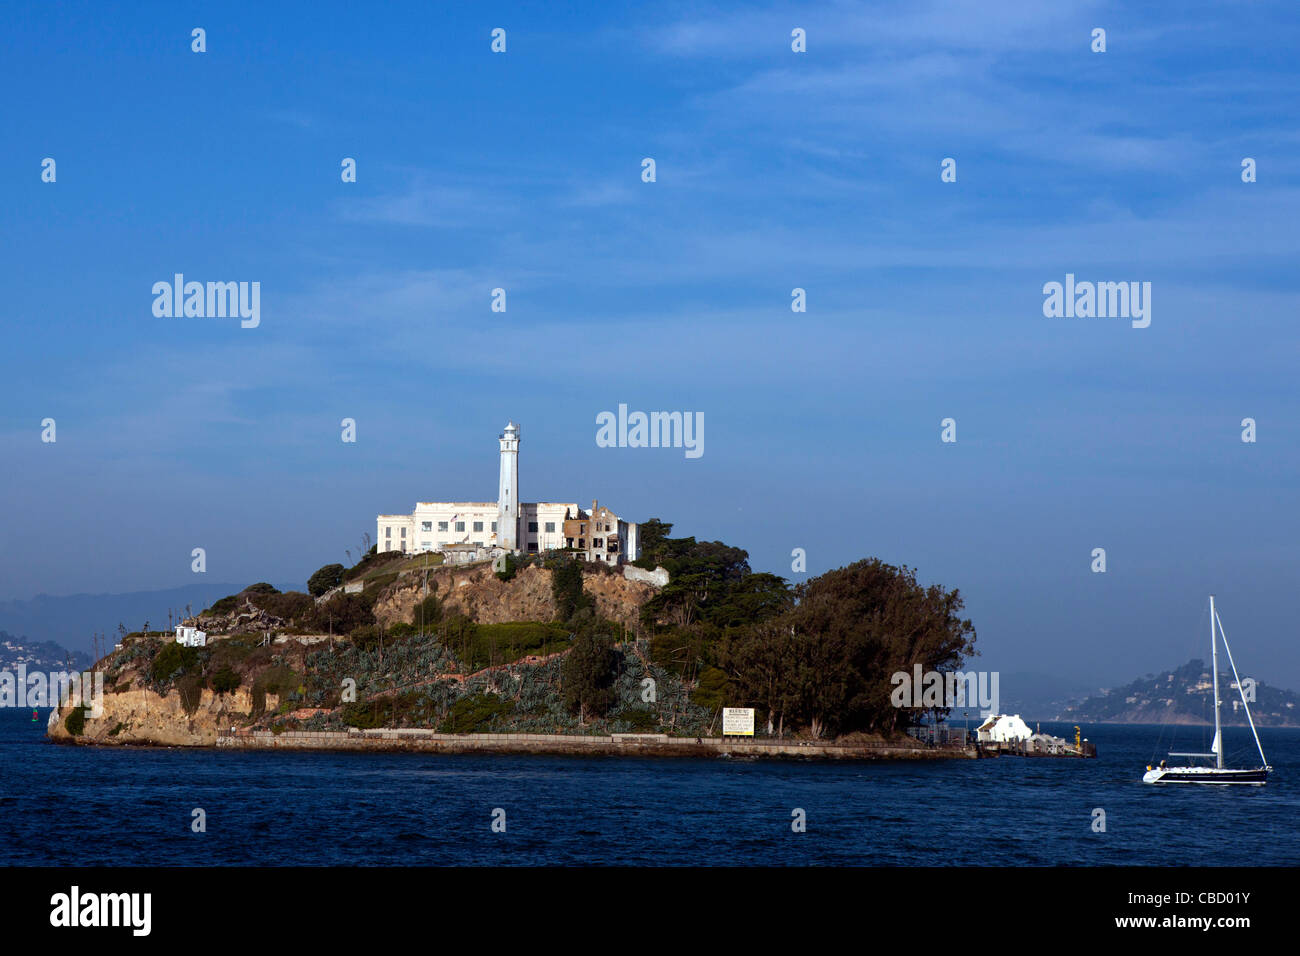 Alcatraz Island with sailboat passing by, San Francisco, California, United States of America - Stock Image